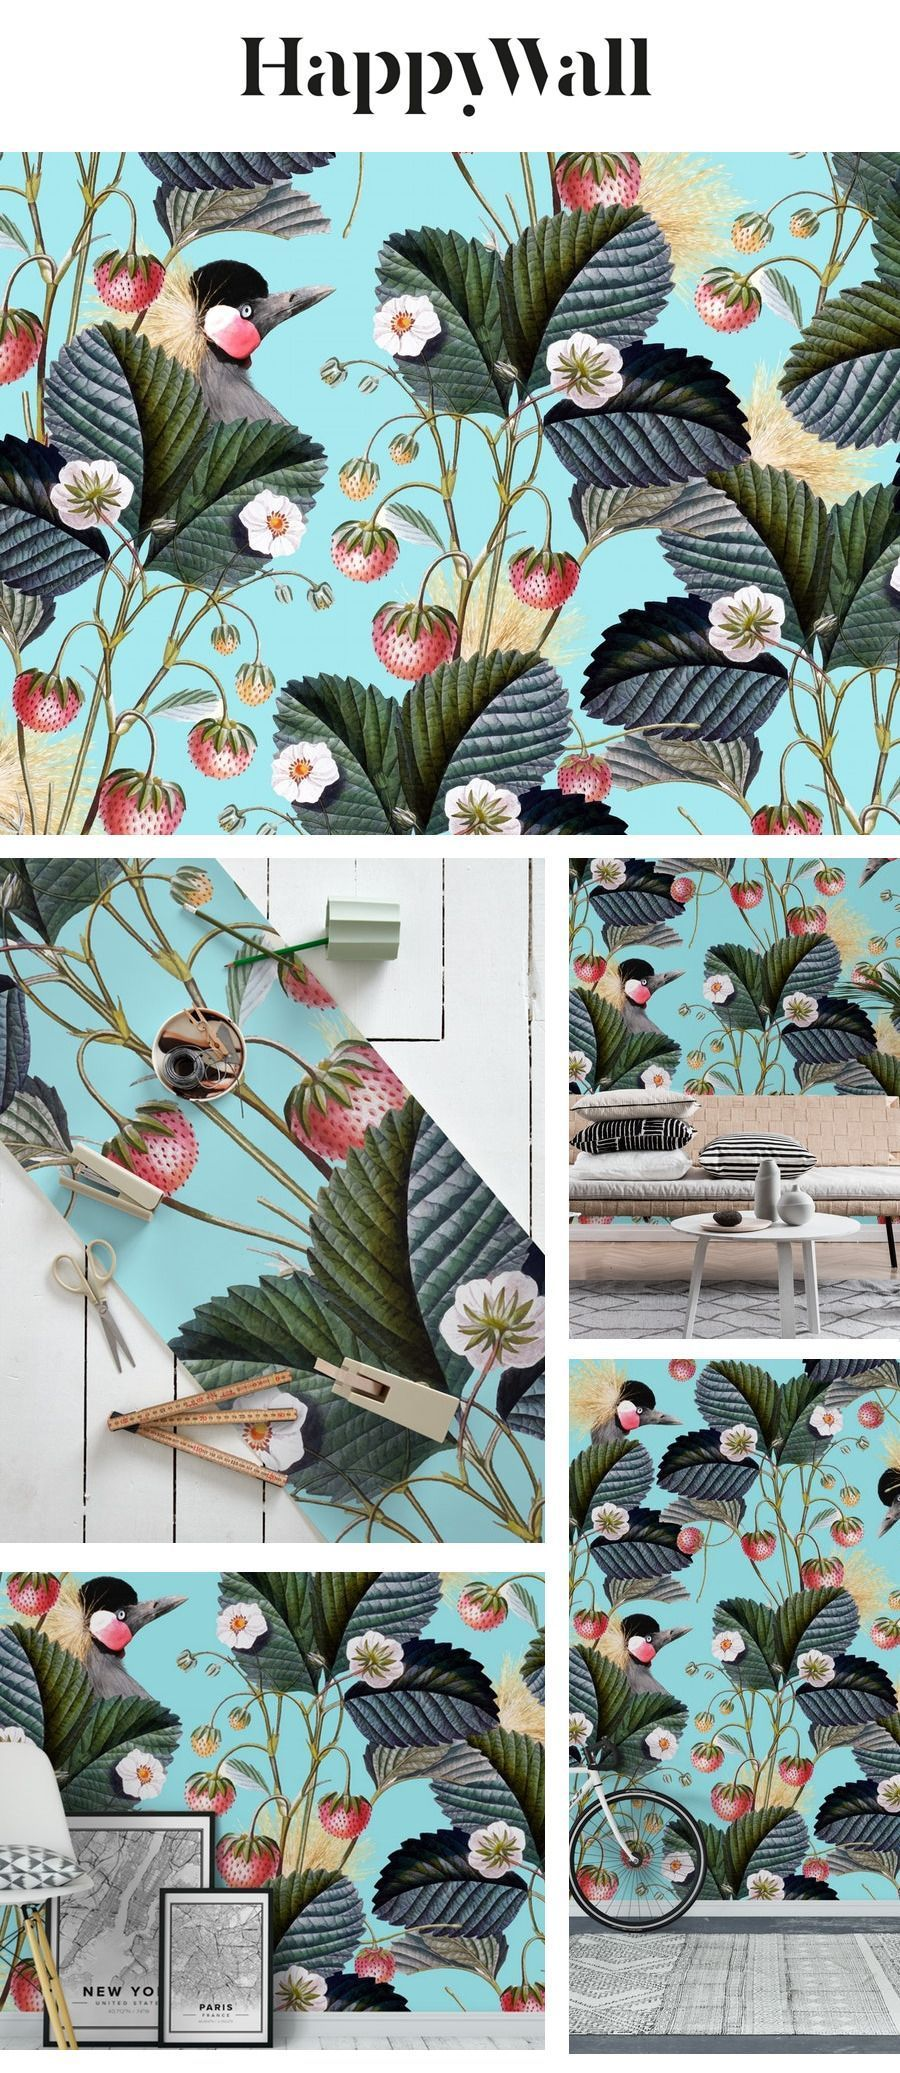 Strawberry Bush Hide-Out Wall Mural / Wallpaper Nature #octoberwallpaper Strawberry Bush Hide-Out wall mural from Happywall #tropical #wallmurals #exotic #october #strawberry #leaves #bird #graphic #animal #november #wallpaper #happywall #wallpapers #design #botanical #pattern #vintage #fruit #wallmural #food #nature #novemberwallpaper Strawberry Bush Hide-Out Wall Mural / Wallpaper Nature #octoberwallpaper Strawberry Bush Hide-Out wall mural from Happywall #tropical #wallmurals #exotic #october #octoberwallpaper